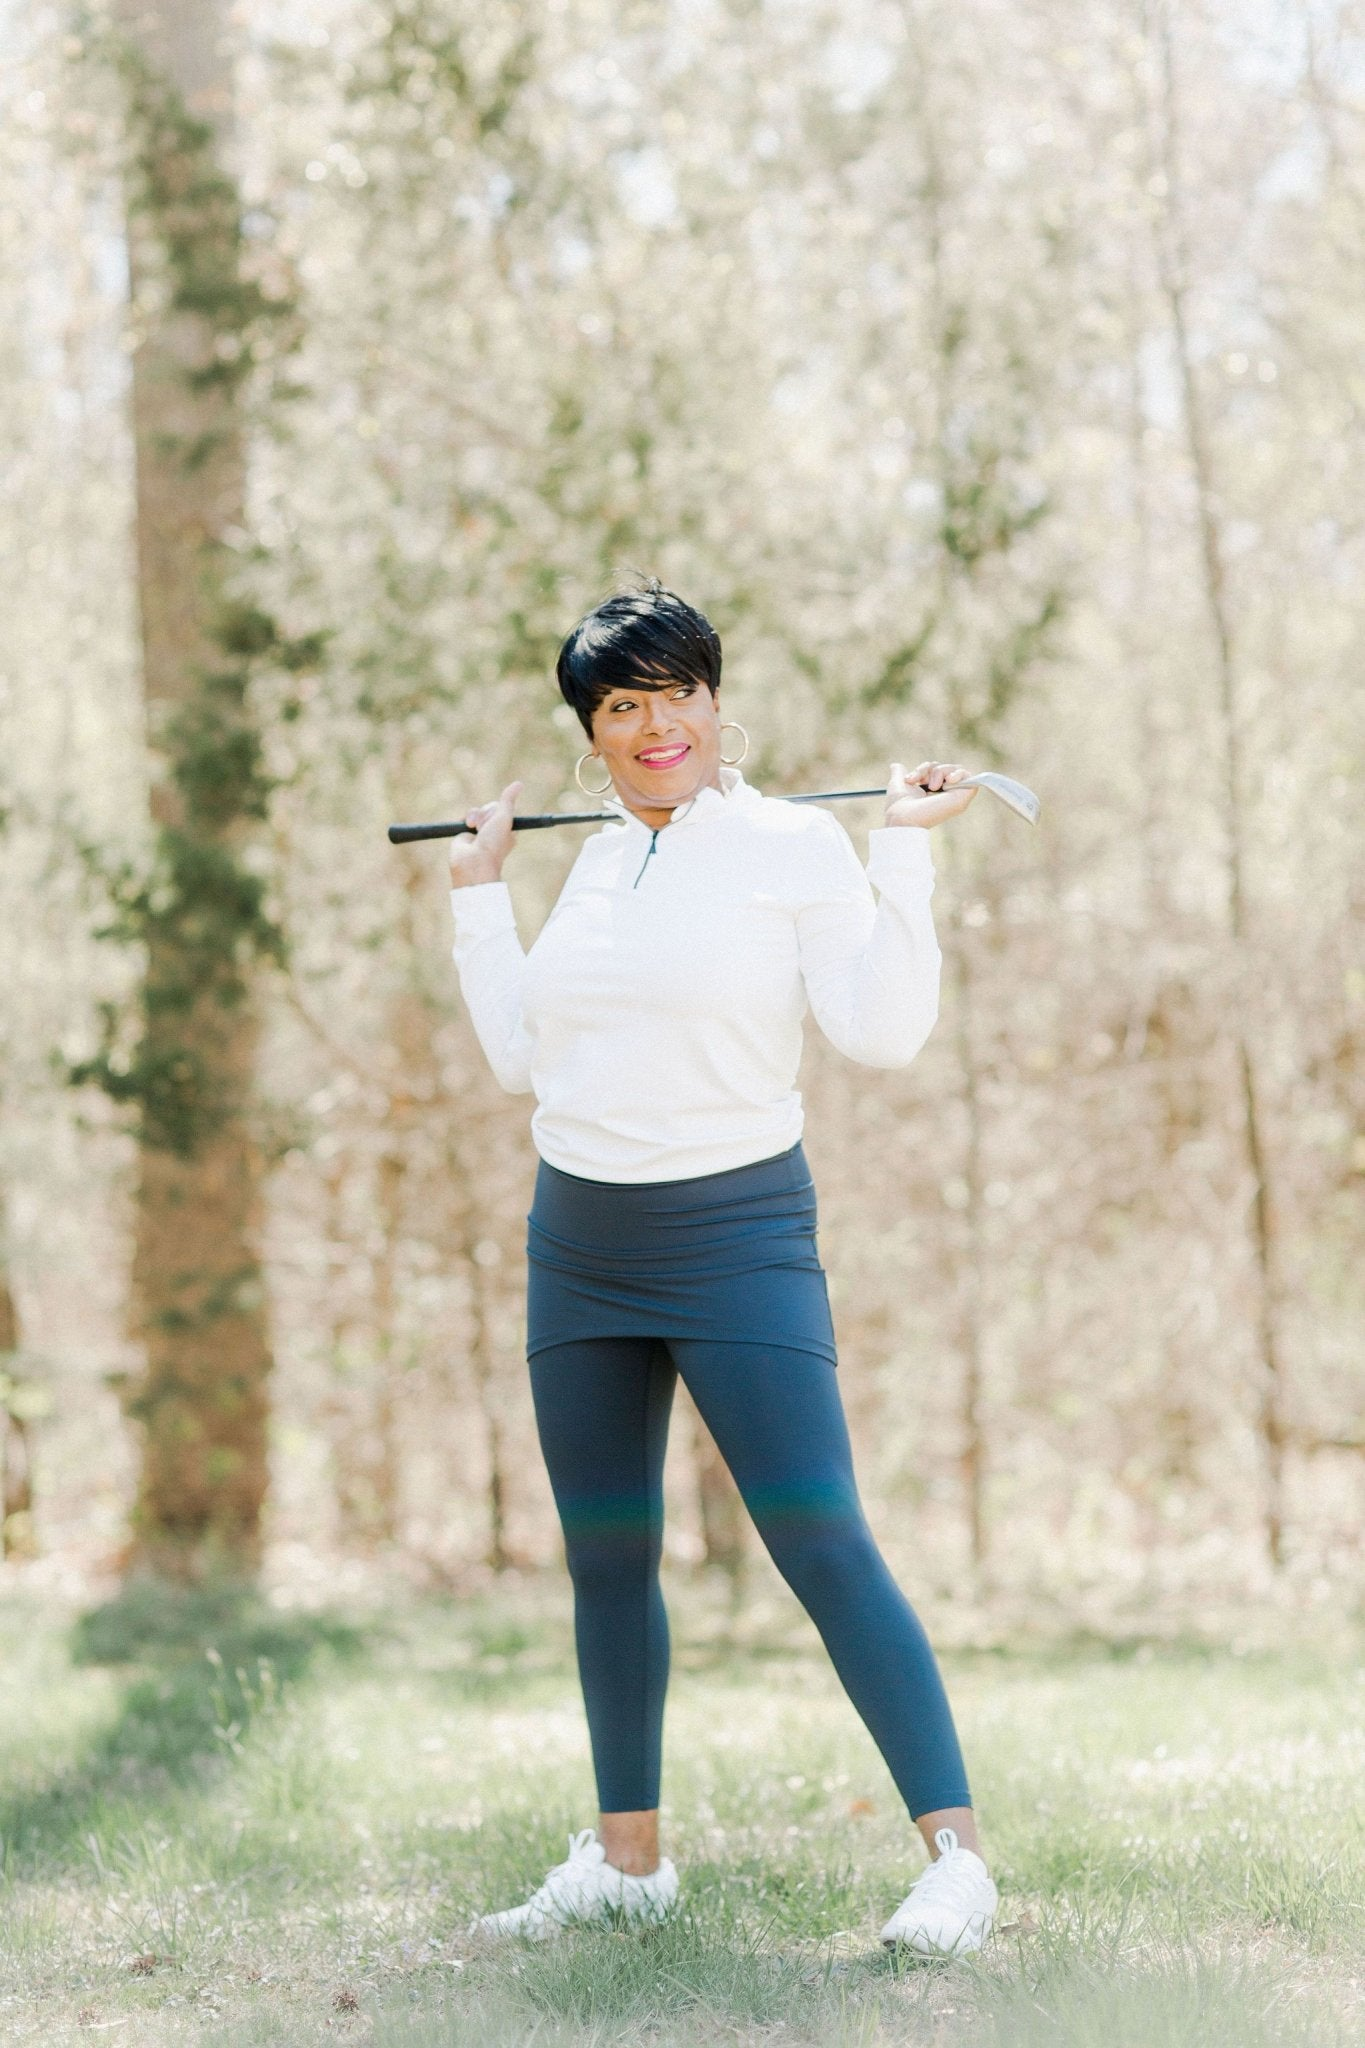 Beginner's Guide To Golf: What To Wear | SwingDish